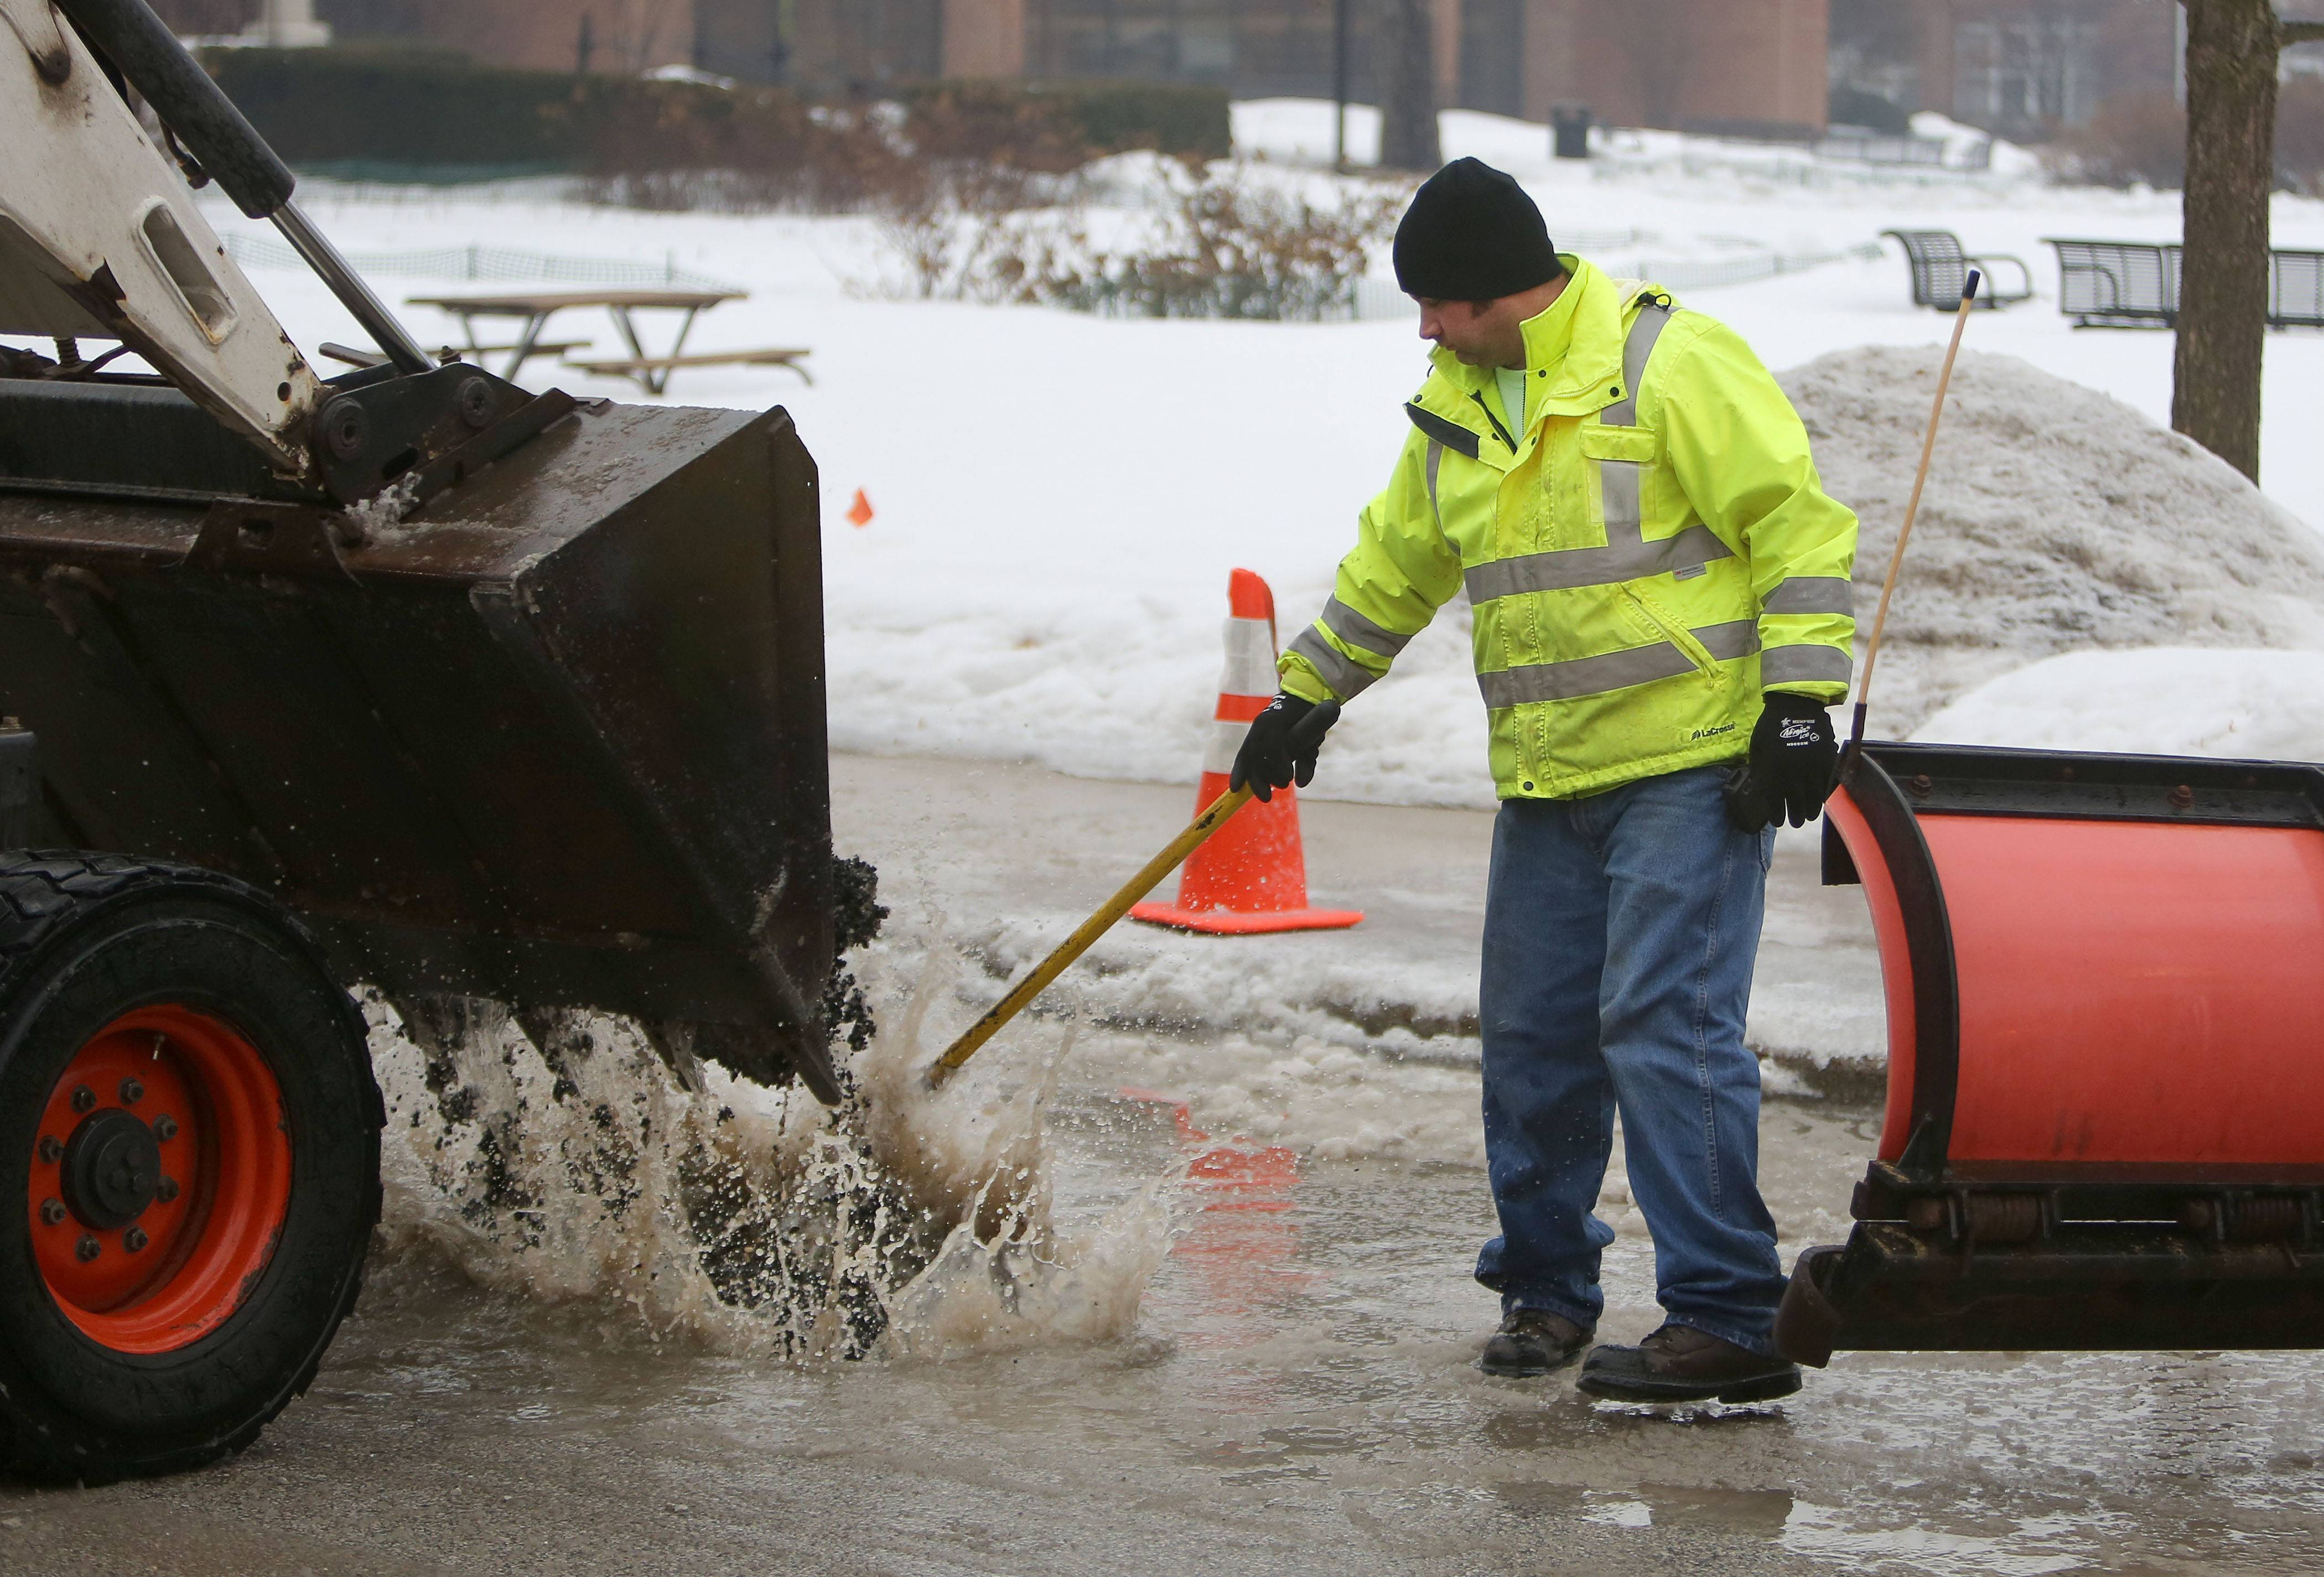 Libertyville Public Works employee Daryl Sellek fills in a huge pothole that's filled with water in downtown Libertyville Thursday morning.